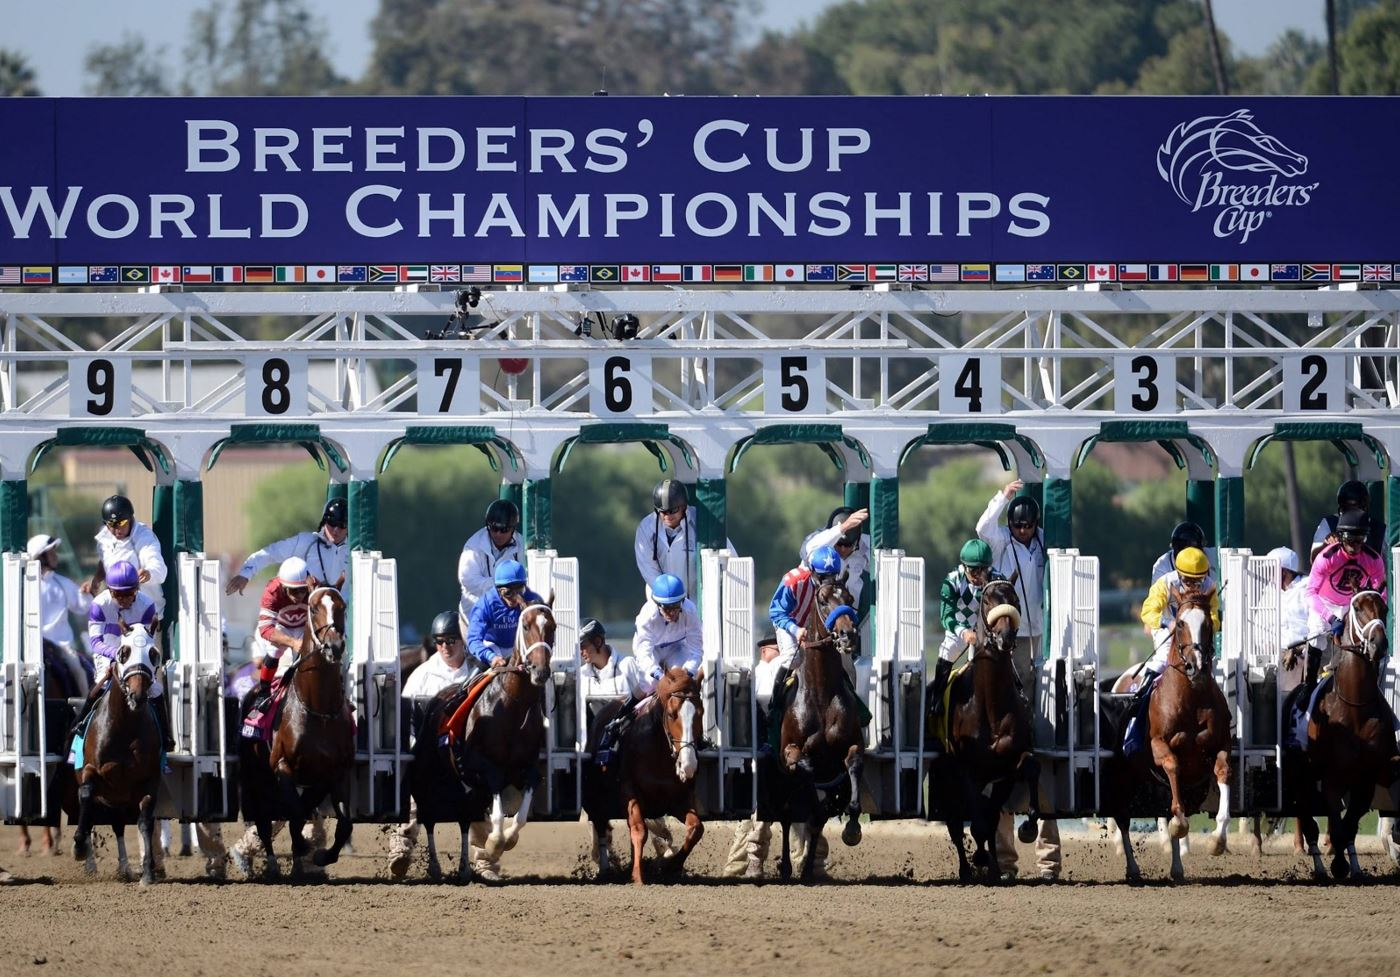 Complete Guide to Betting on Horse Racing